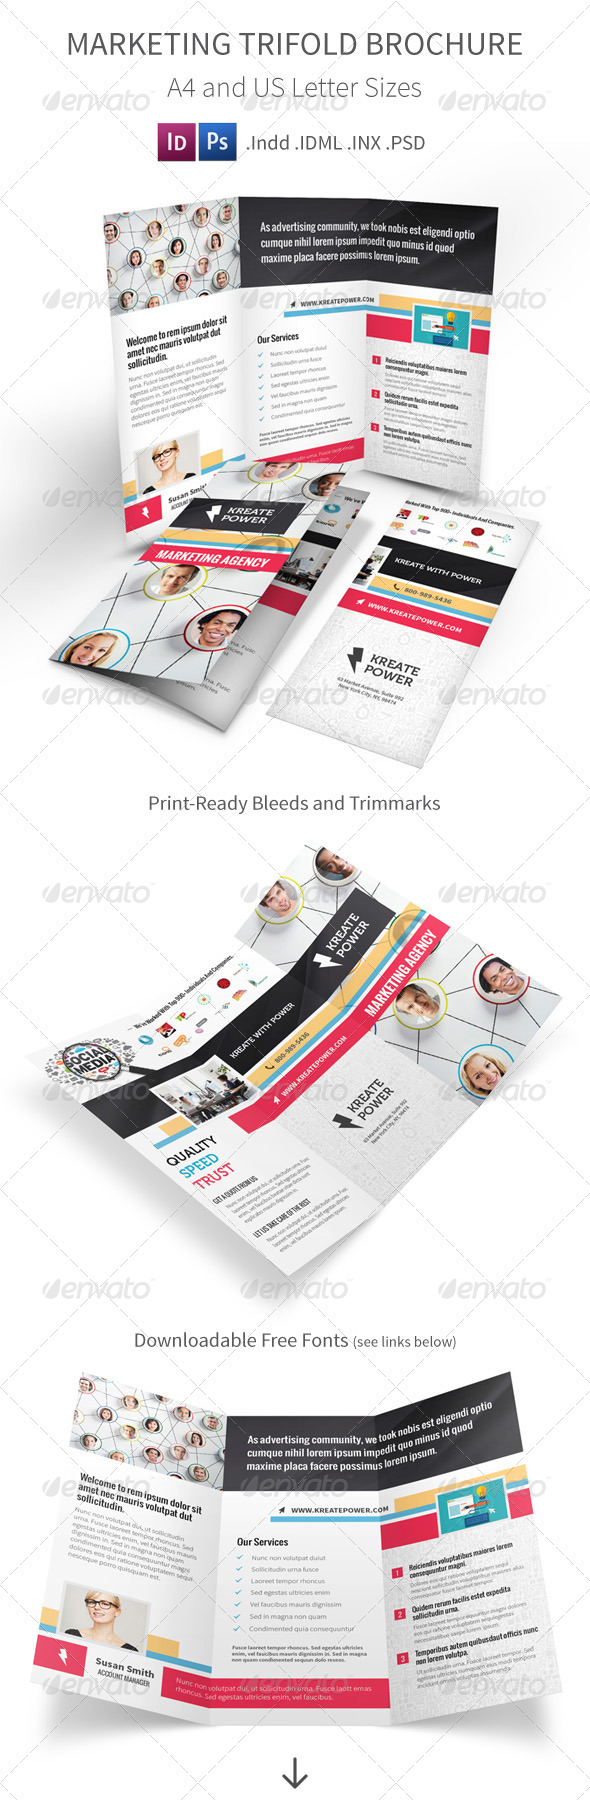 GraphicRiver Marketing and Advertising Trifold Brochure 8730761